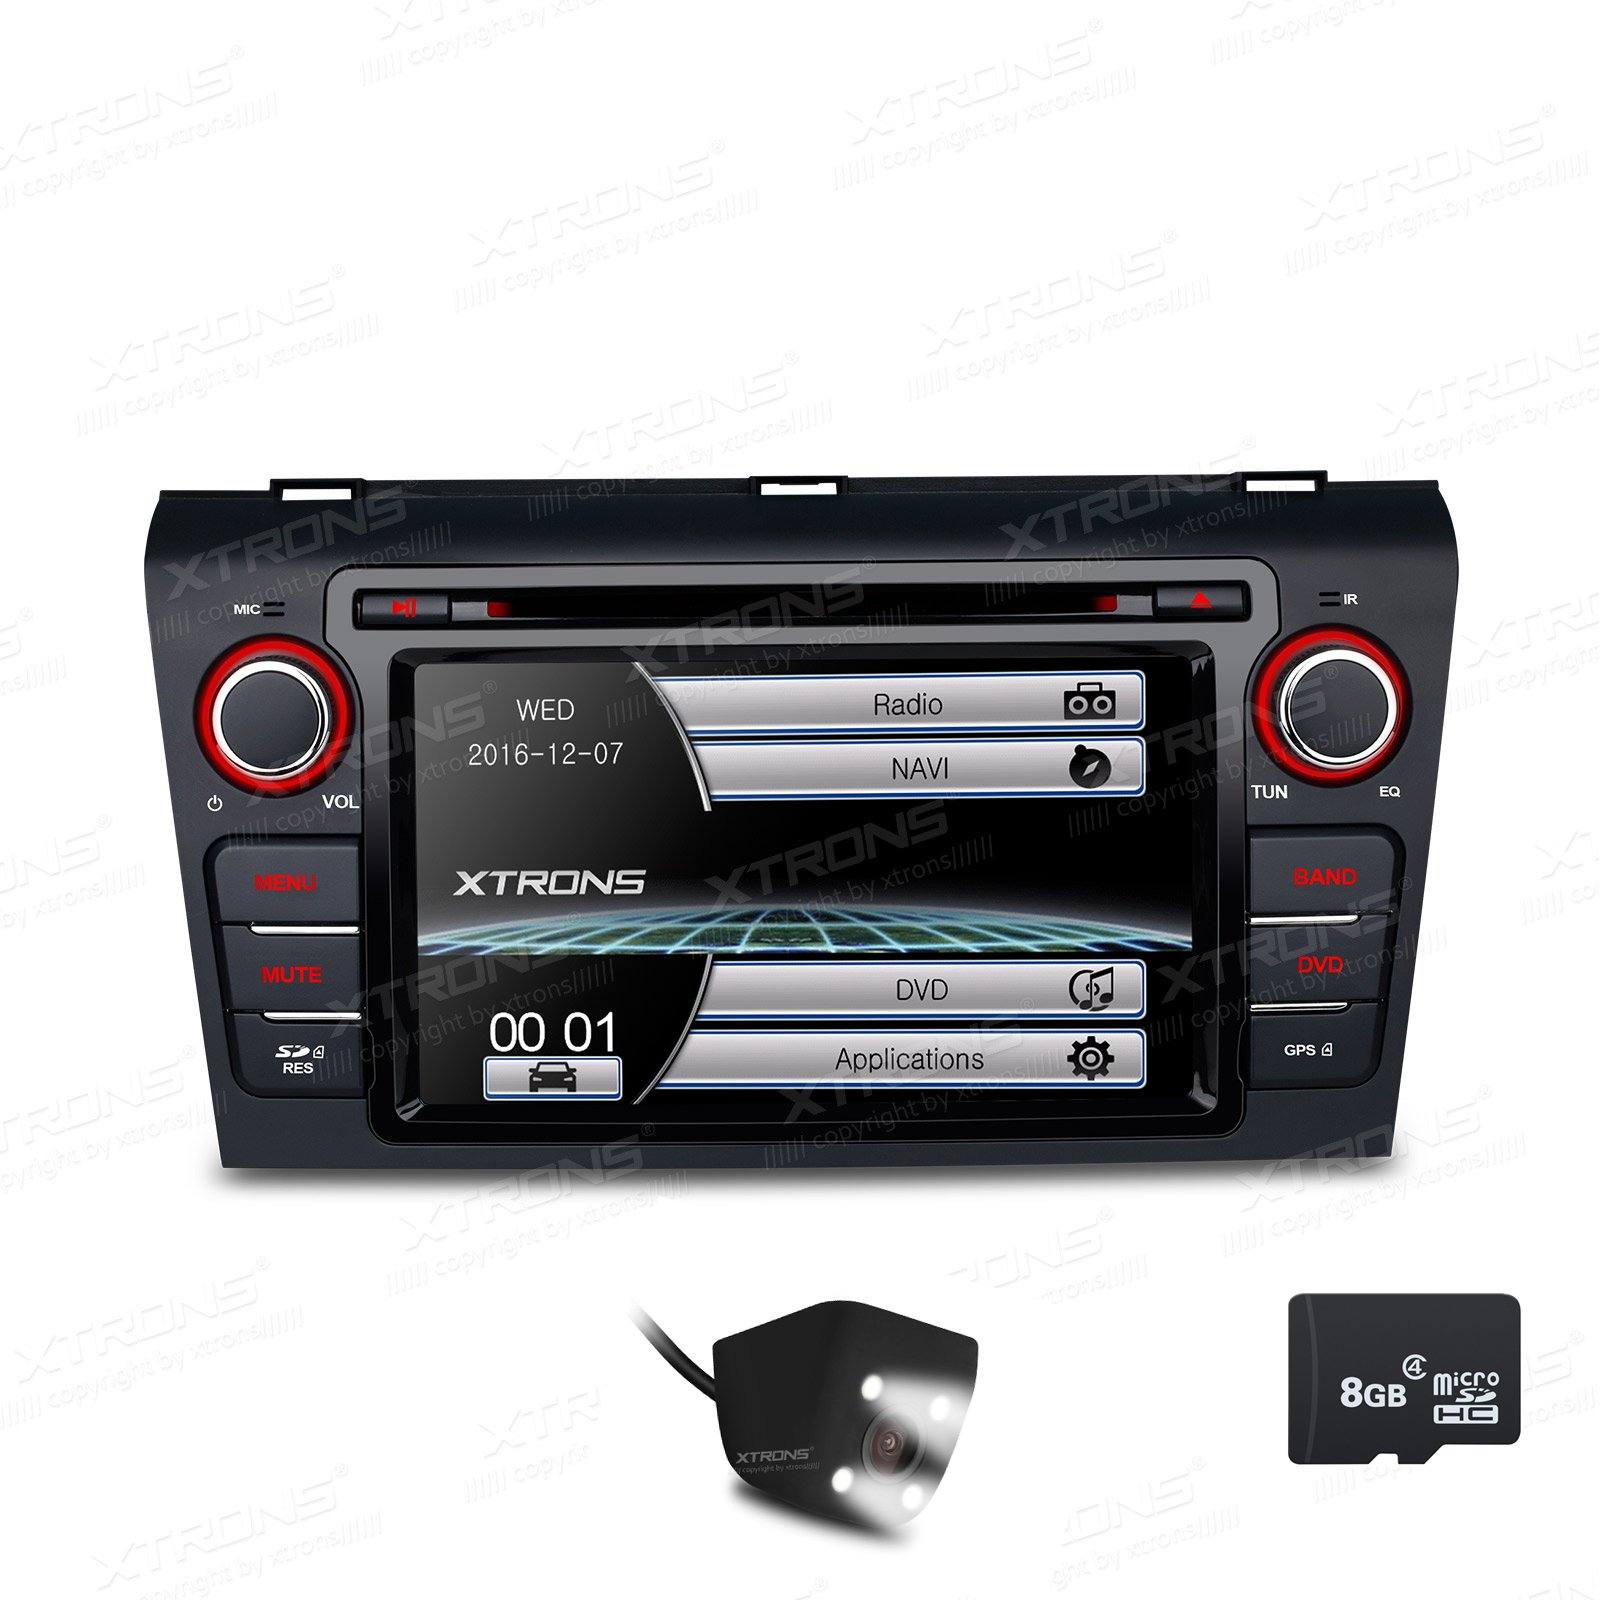 XTRONS 7 Inch HD Digital Touch Screen Car Stereo Radio In-Dash DVD Player with GPS Navigation CANbus Screen Mirroring Function for Mazda 3 Reversing Camera&Map Card Included